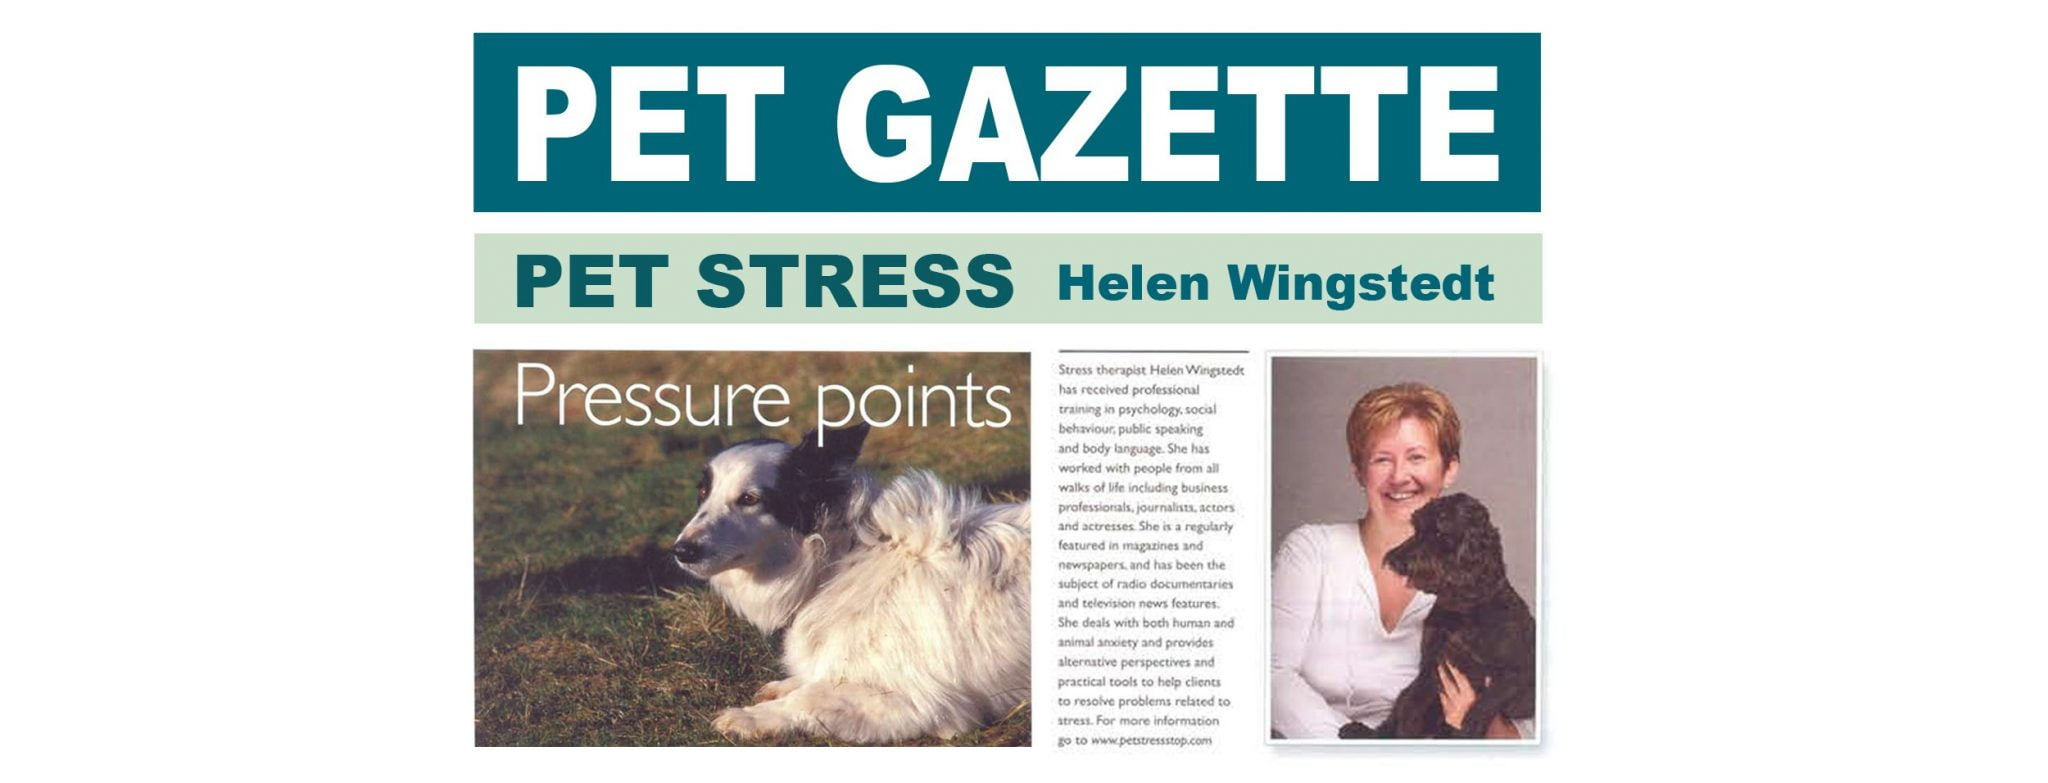 Pet_Gazette_Pet_Stress